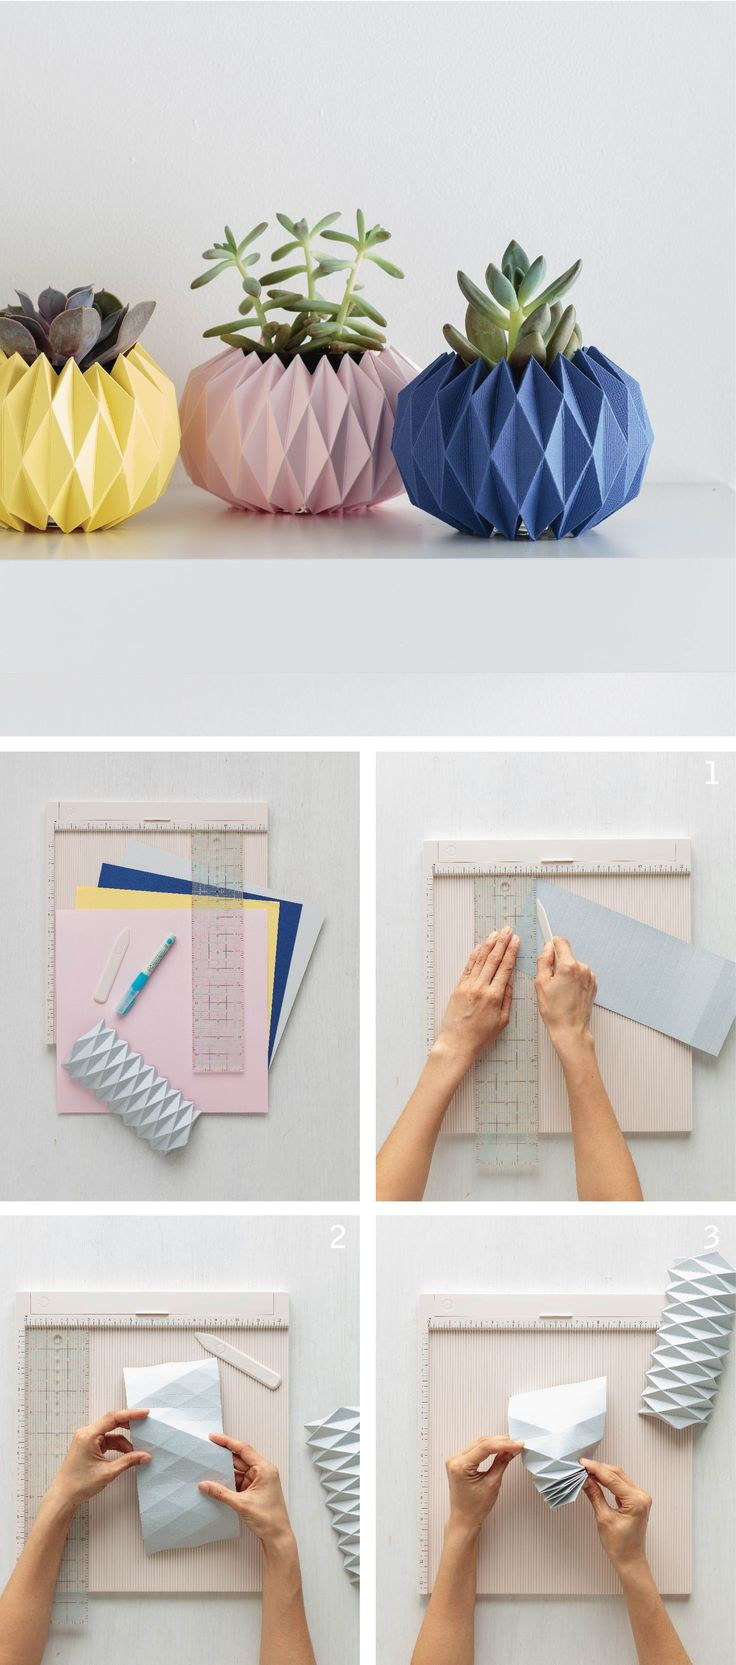 Best 25 diy origami ideas on pinterest origami paper folding best 25 diy origami ideas on pinterest origami paper folding origami without square paper and how to make origami solutioingenieria Gallery